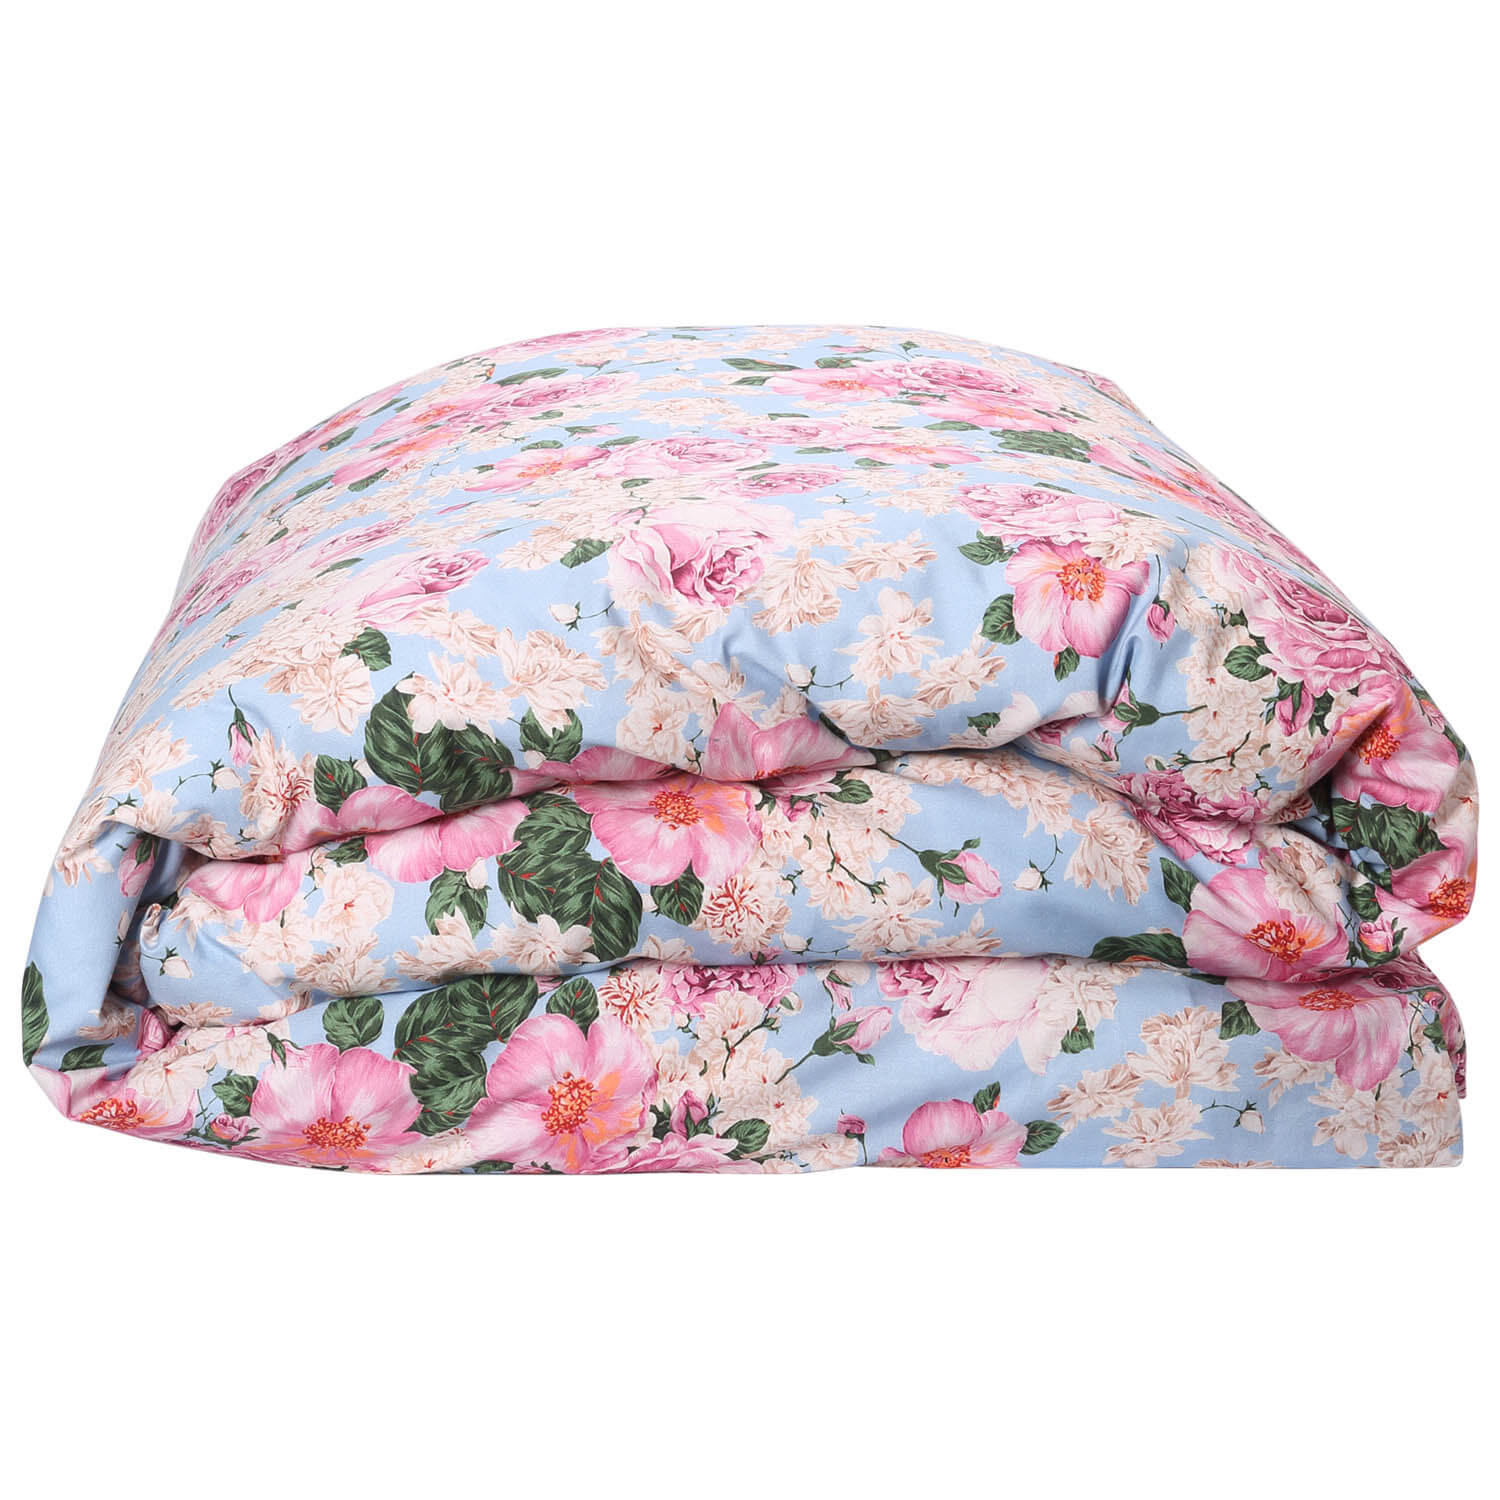 Kip and Co Peony quilt cover various sizes available | The Home Maven